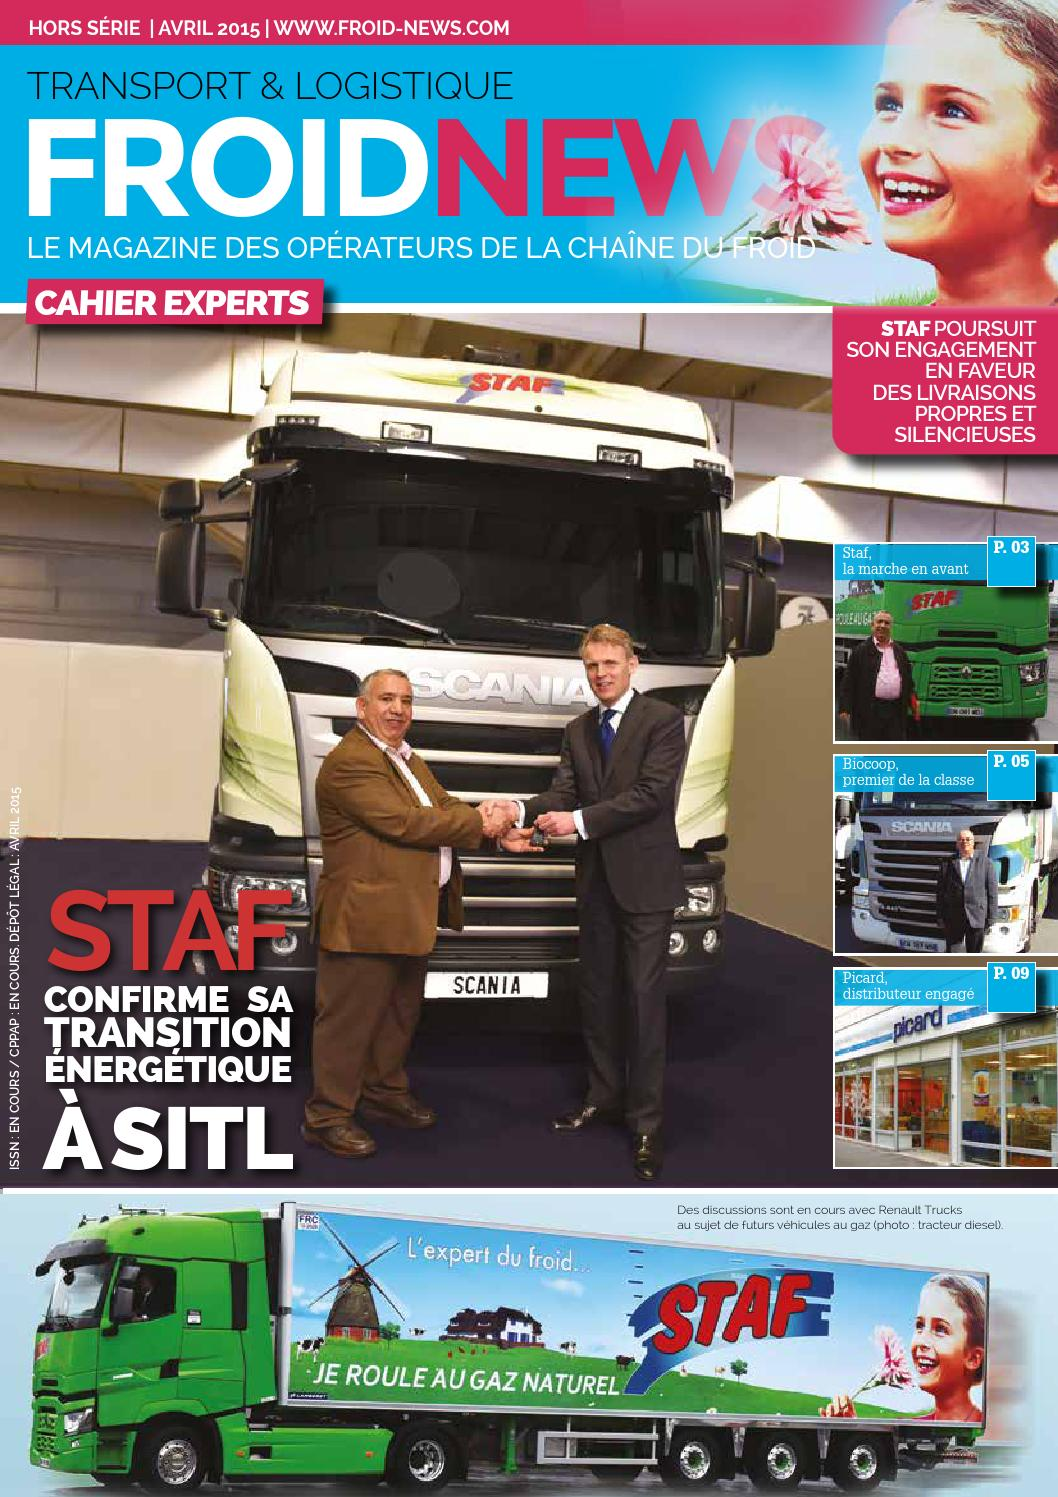 FROID NEWS CAHIER EXPERT STAF UNE